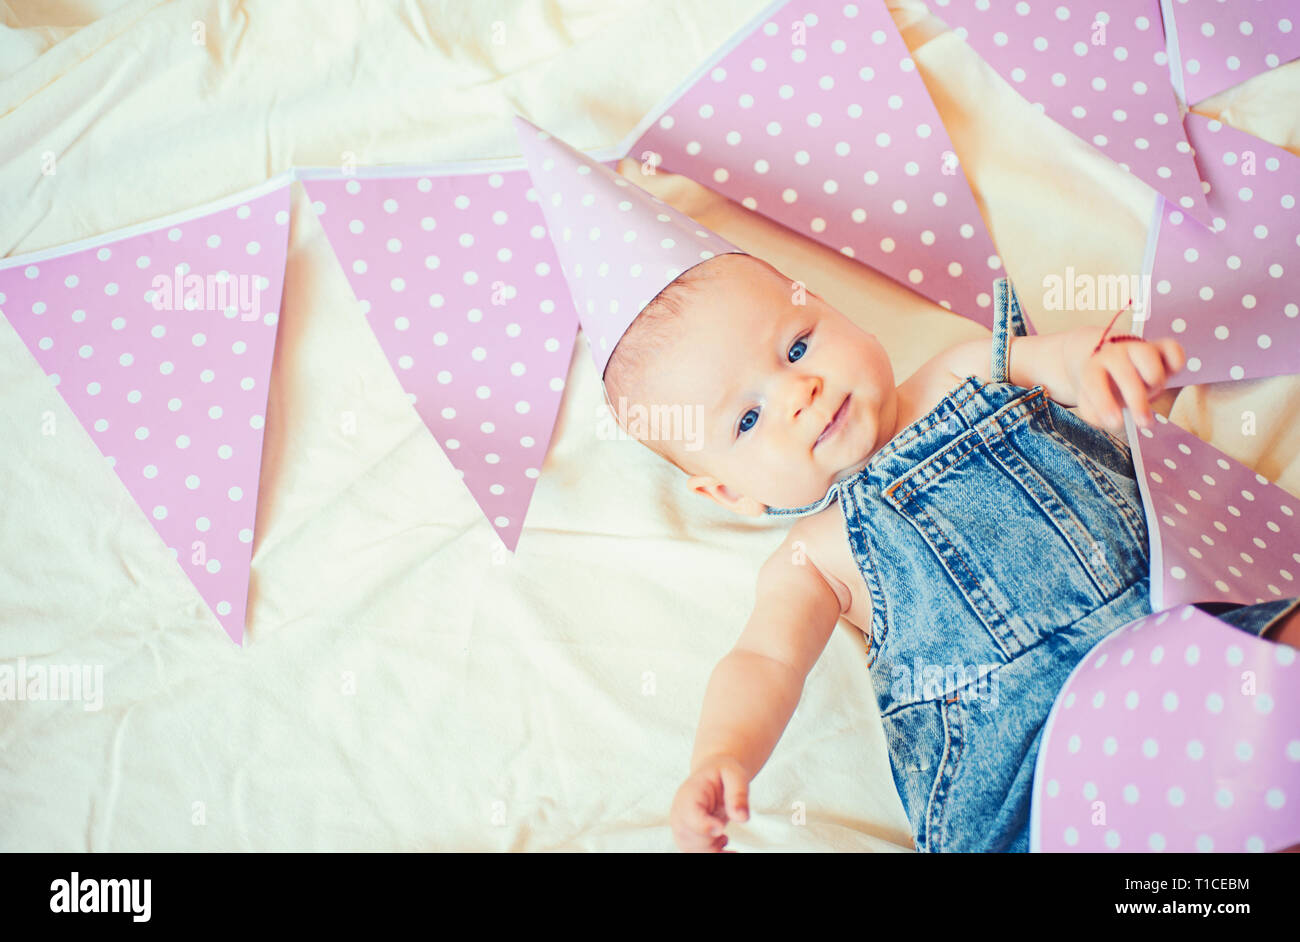 My best little friend. Sweet little baby. New life and birth. Childhood happiness. Portrait of happy little child. Small girl. Happy birthday. Family Stock Photo